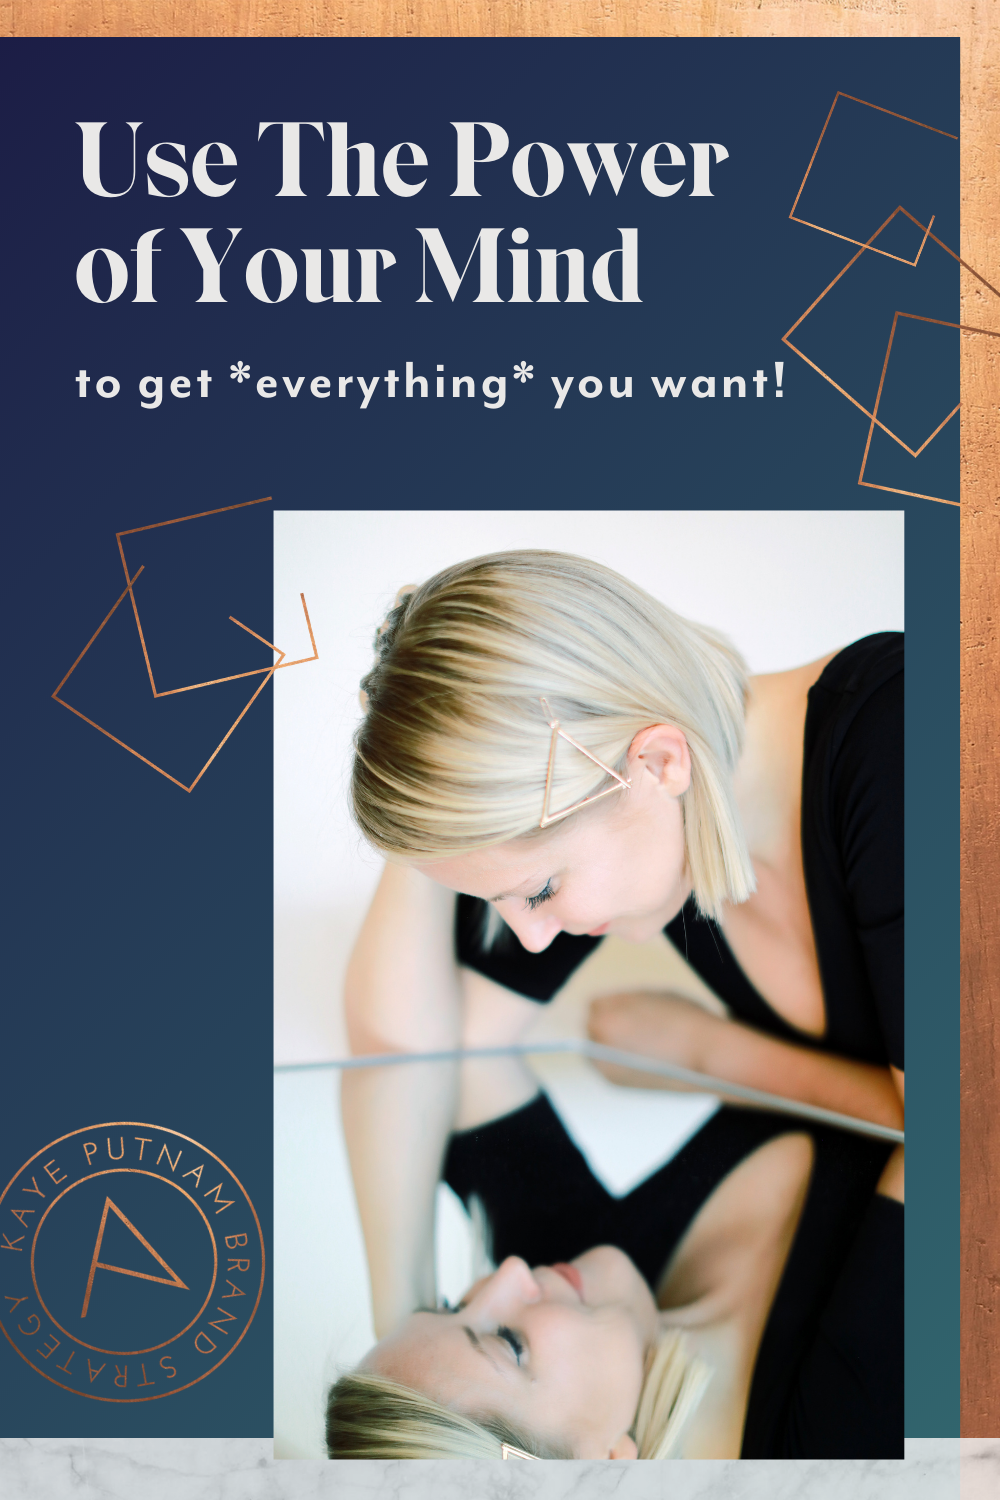 The Power of Your Mind - Reticular Activating System